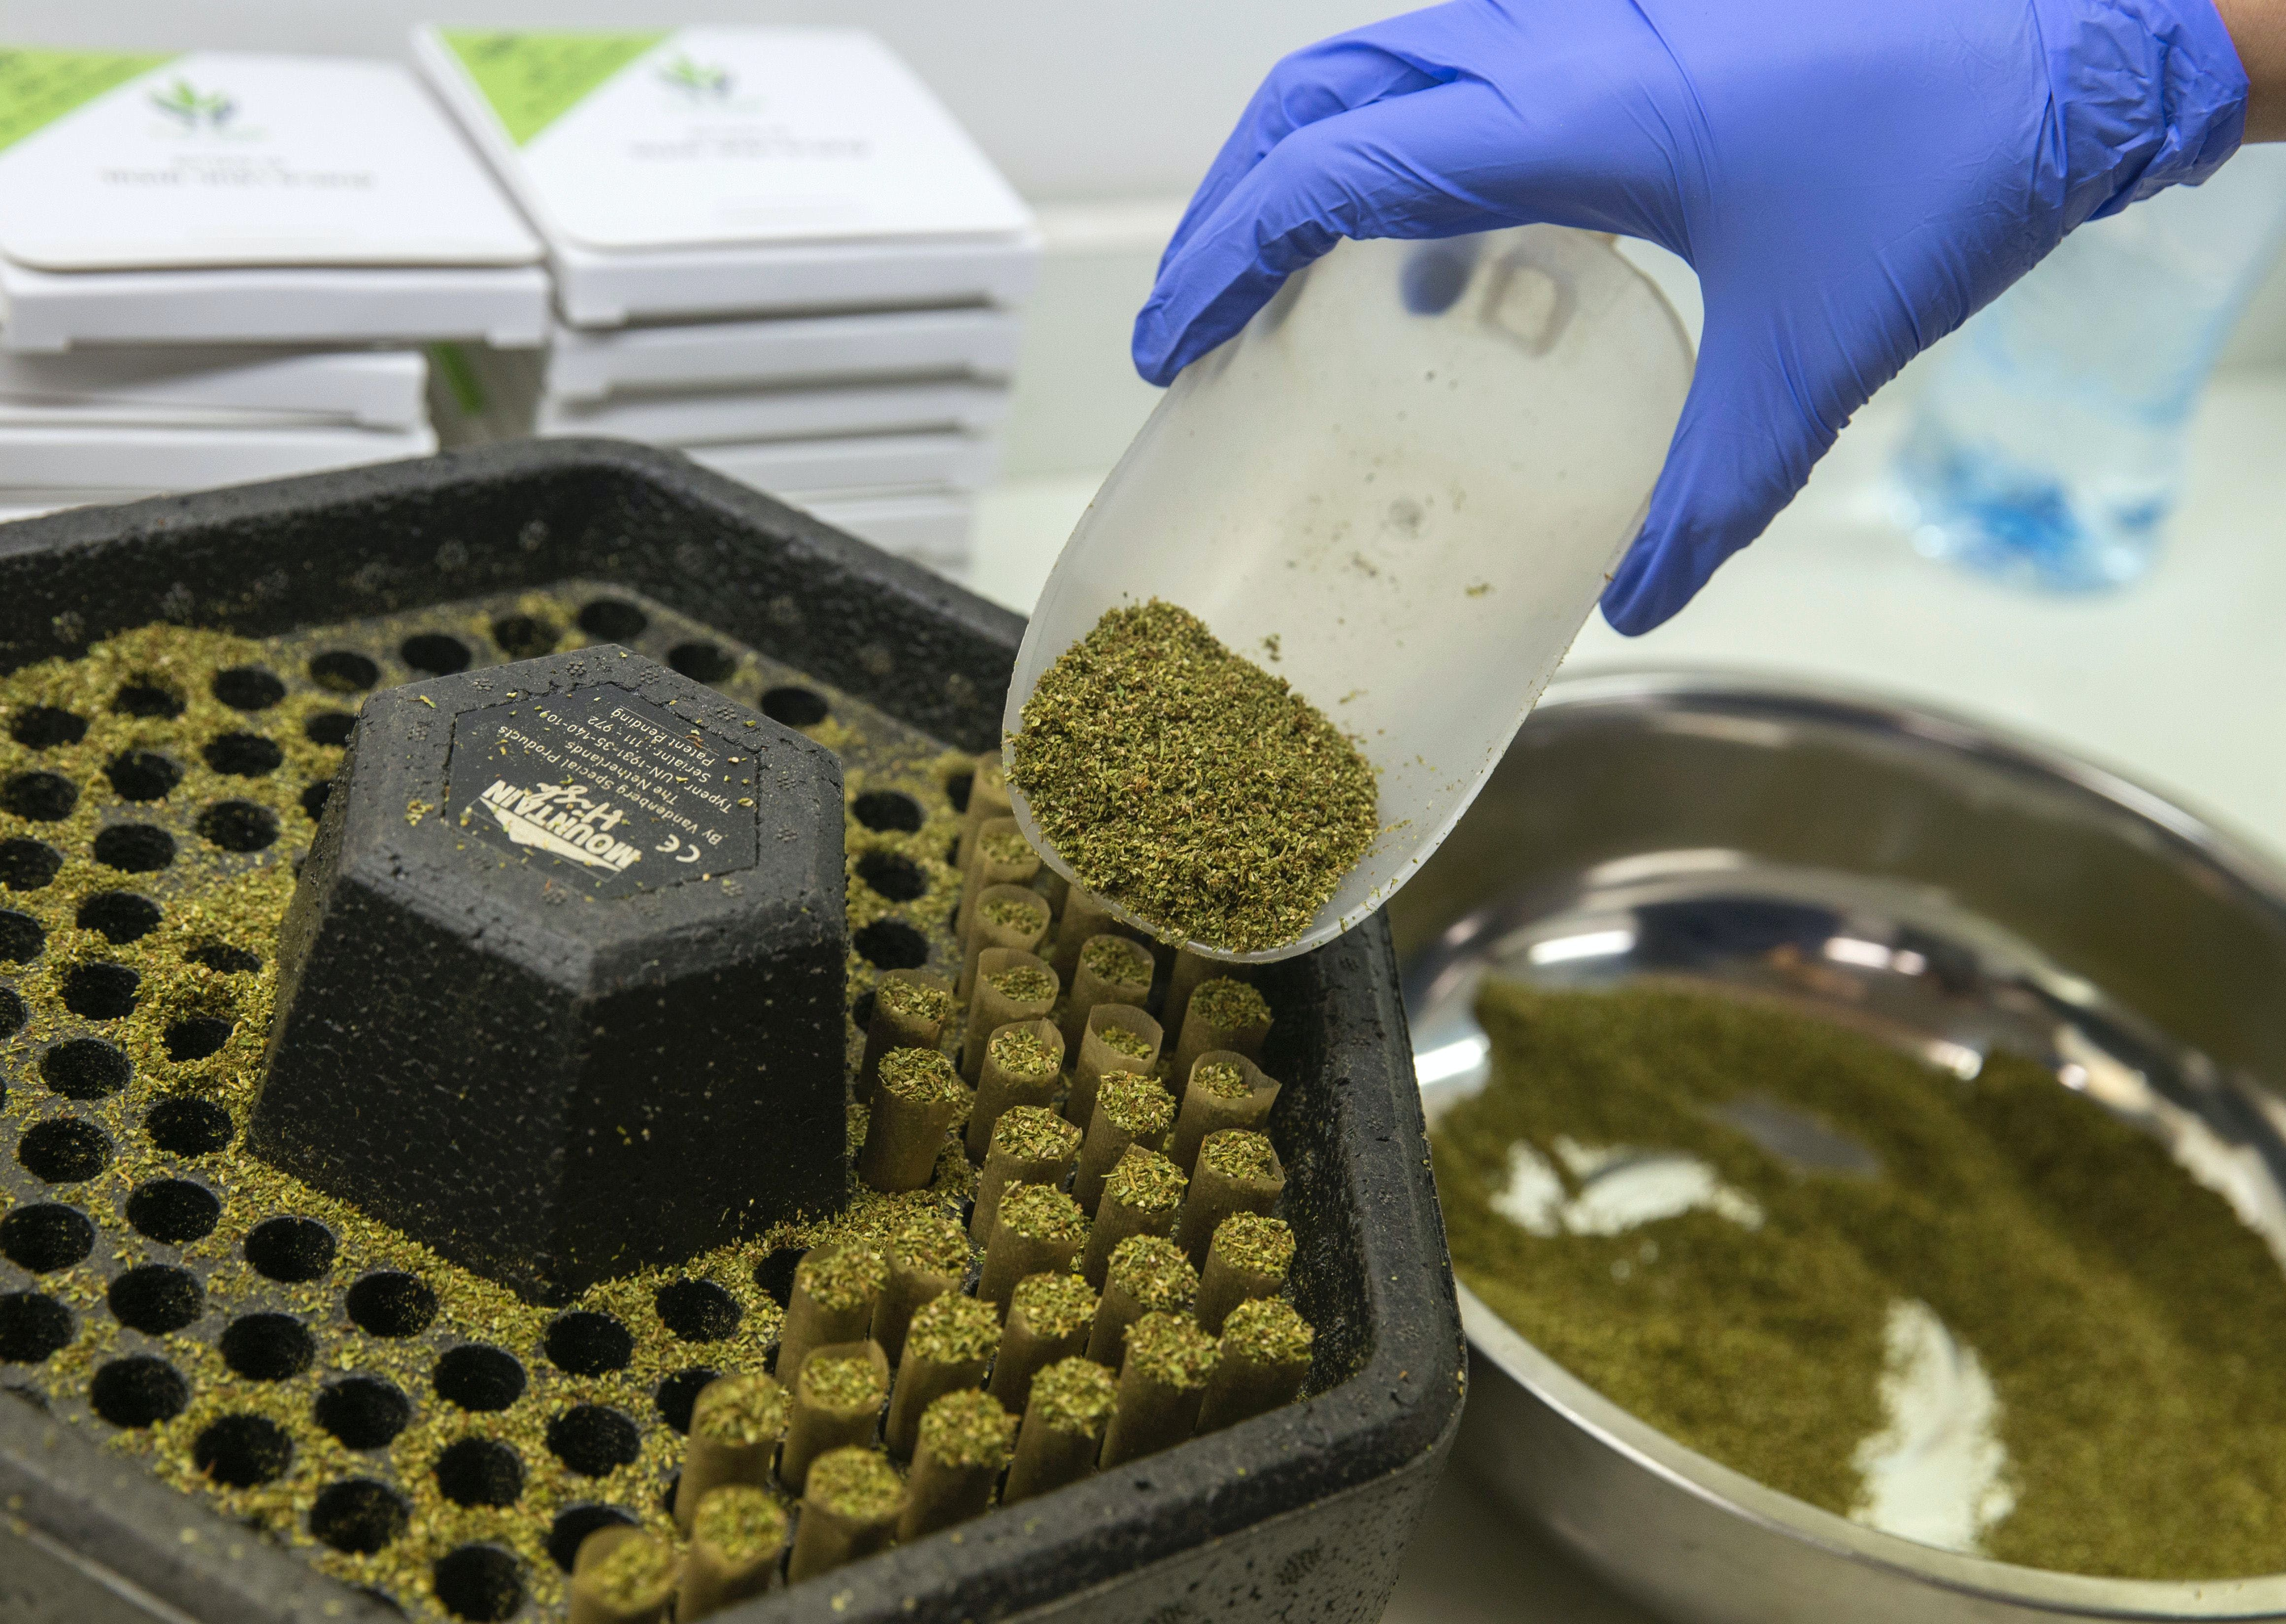 Oklahoma health officials ban the sale of smokable cannabis after voters approve medical marijuana1 Oklahoma's Medical Industry Successfully Lobbies For A Ban On Smokeable Flower